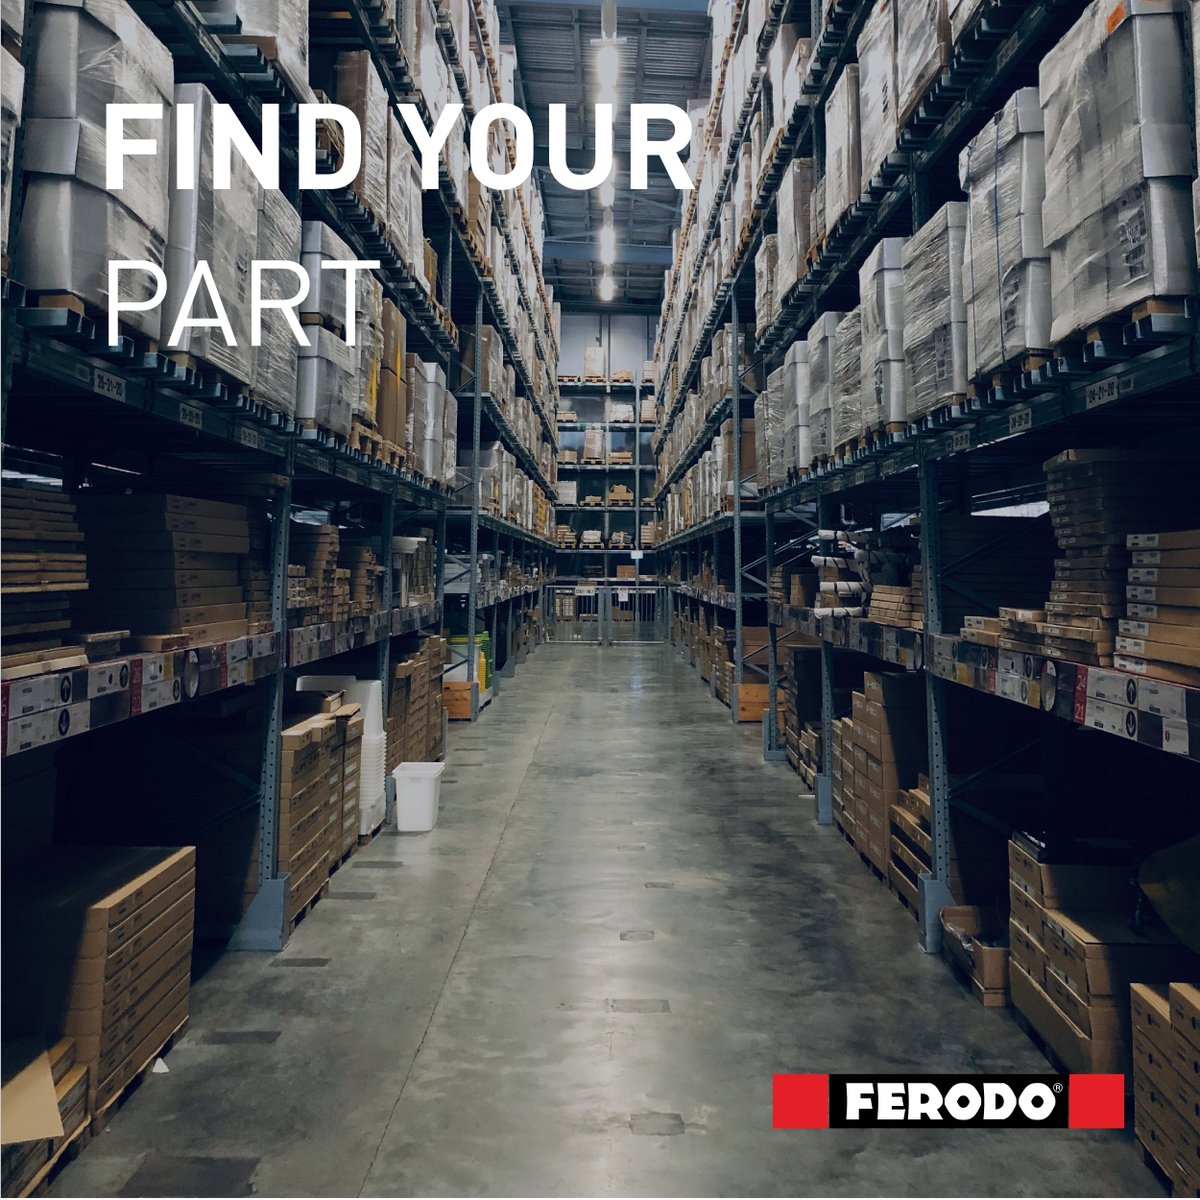 Finding the right part for your vehicle can be tricky business, Ferodo has your back. Our online part finder allows you search by vehicle or part number, making it quick and easy to find exactly what you're looking for. Start searching: https://t.co/eUtwa8BVXI https://t.co/Zi9a4n8ec5